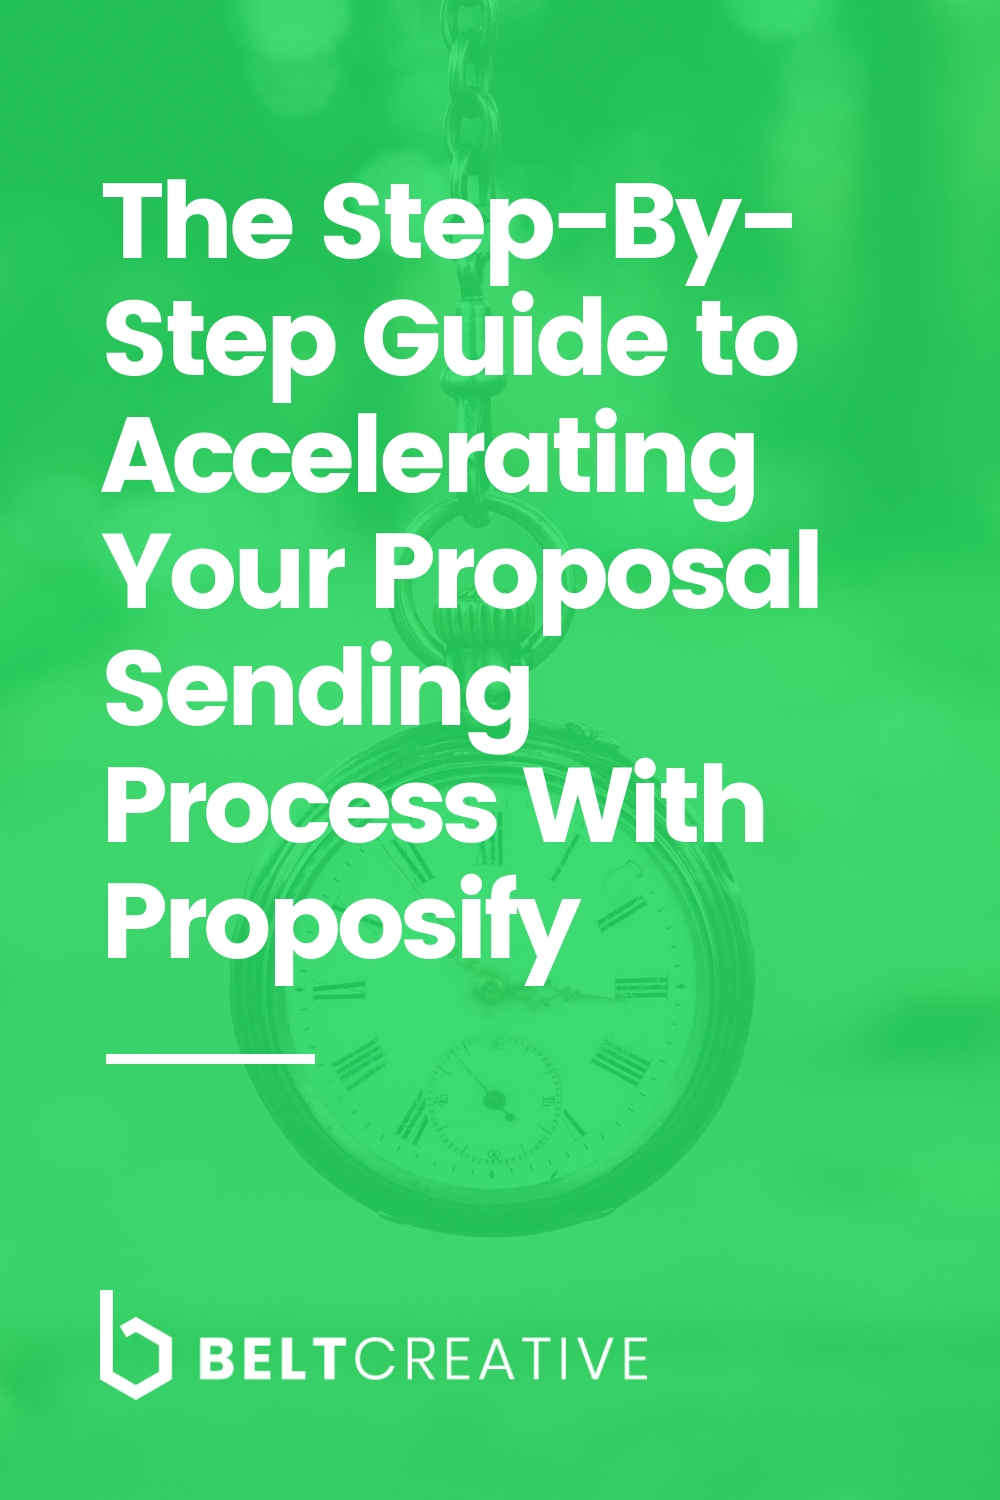 The Step-By-Step Guide to Accelerating Your Proposal Sending Process with Proposify.jpg